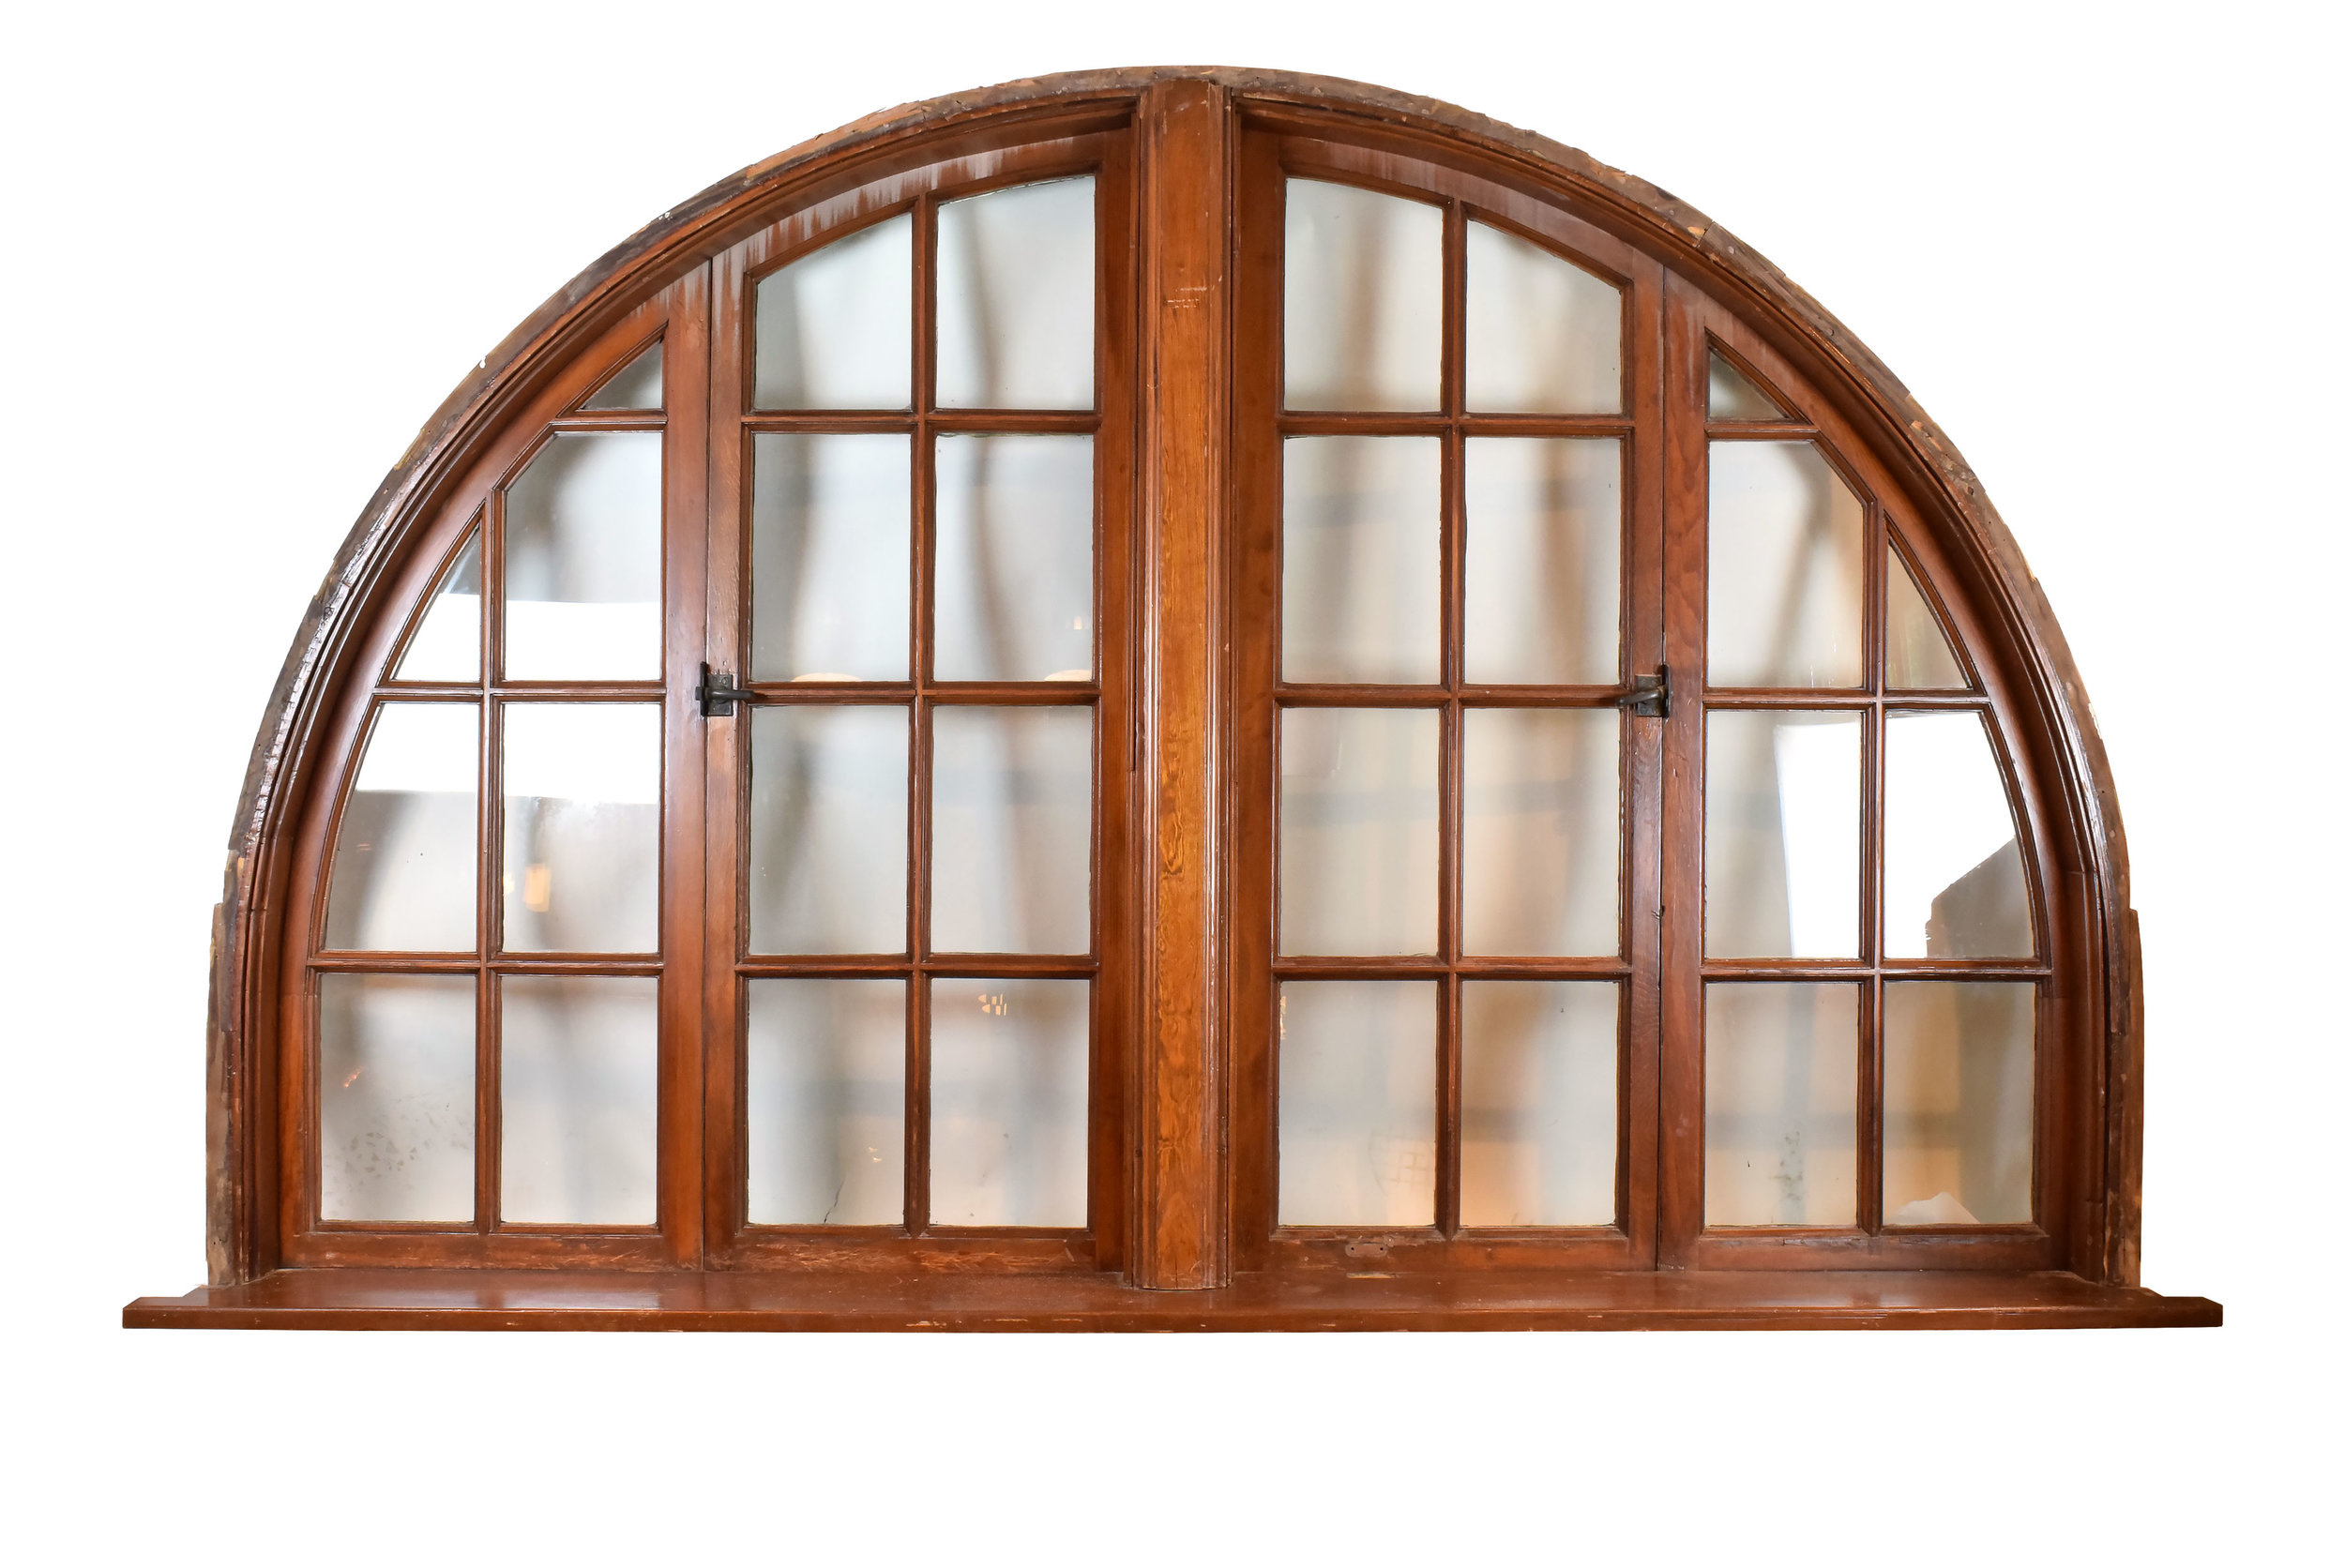 Architectural Antique's Large Arched Window